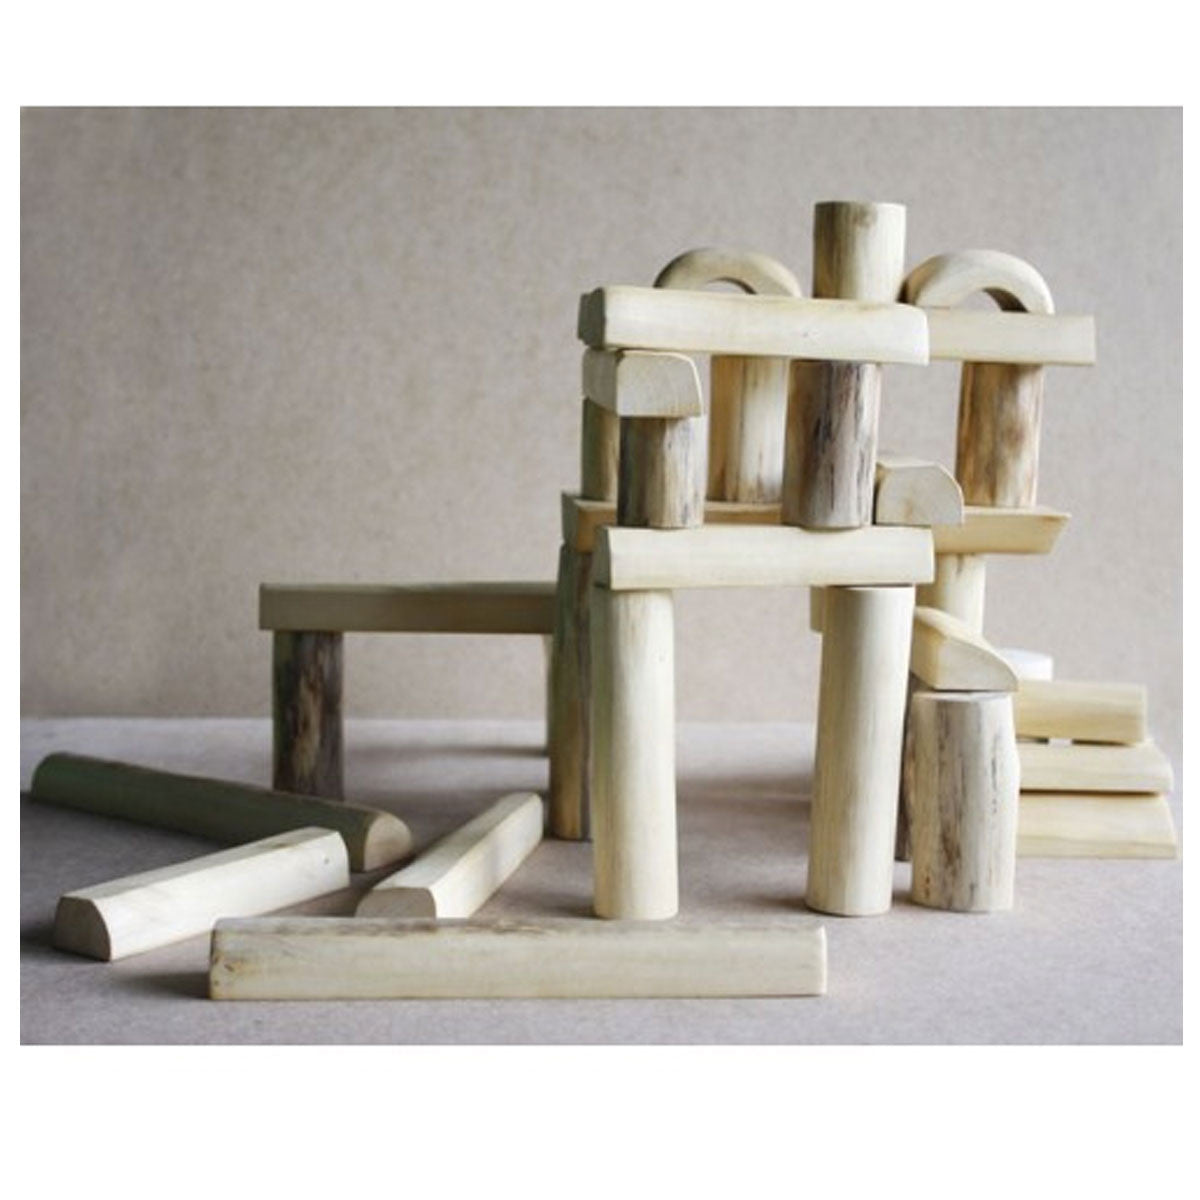 QToys Natural Barkless Tree Blocks QToys Wooden Blocks at Little Earth Nest Eco Shop